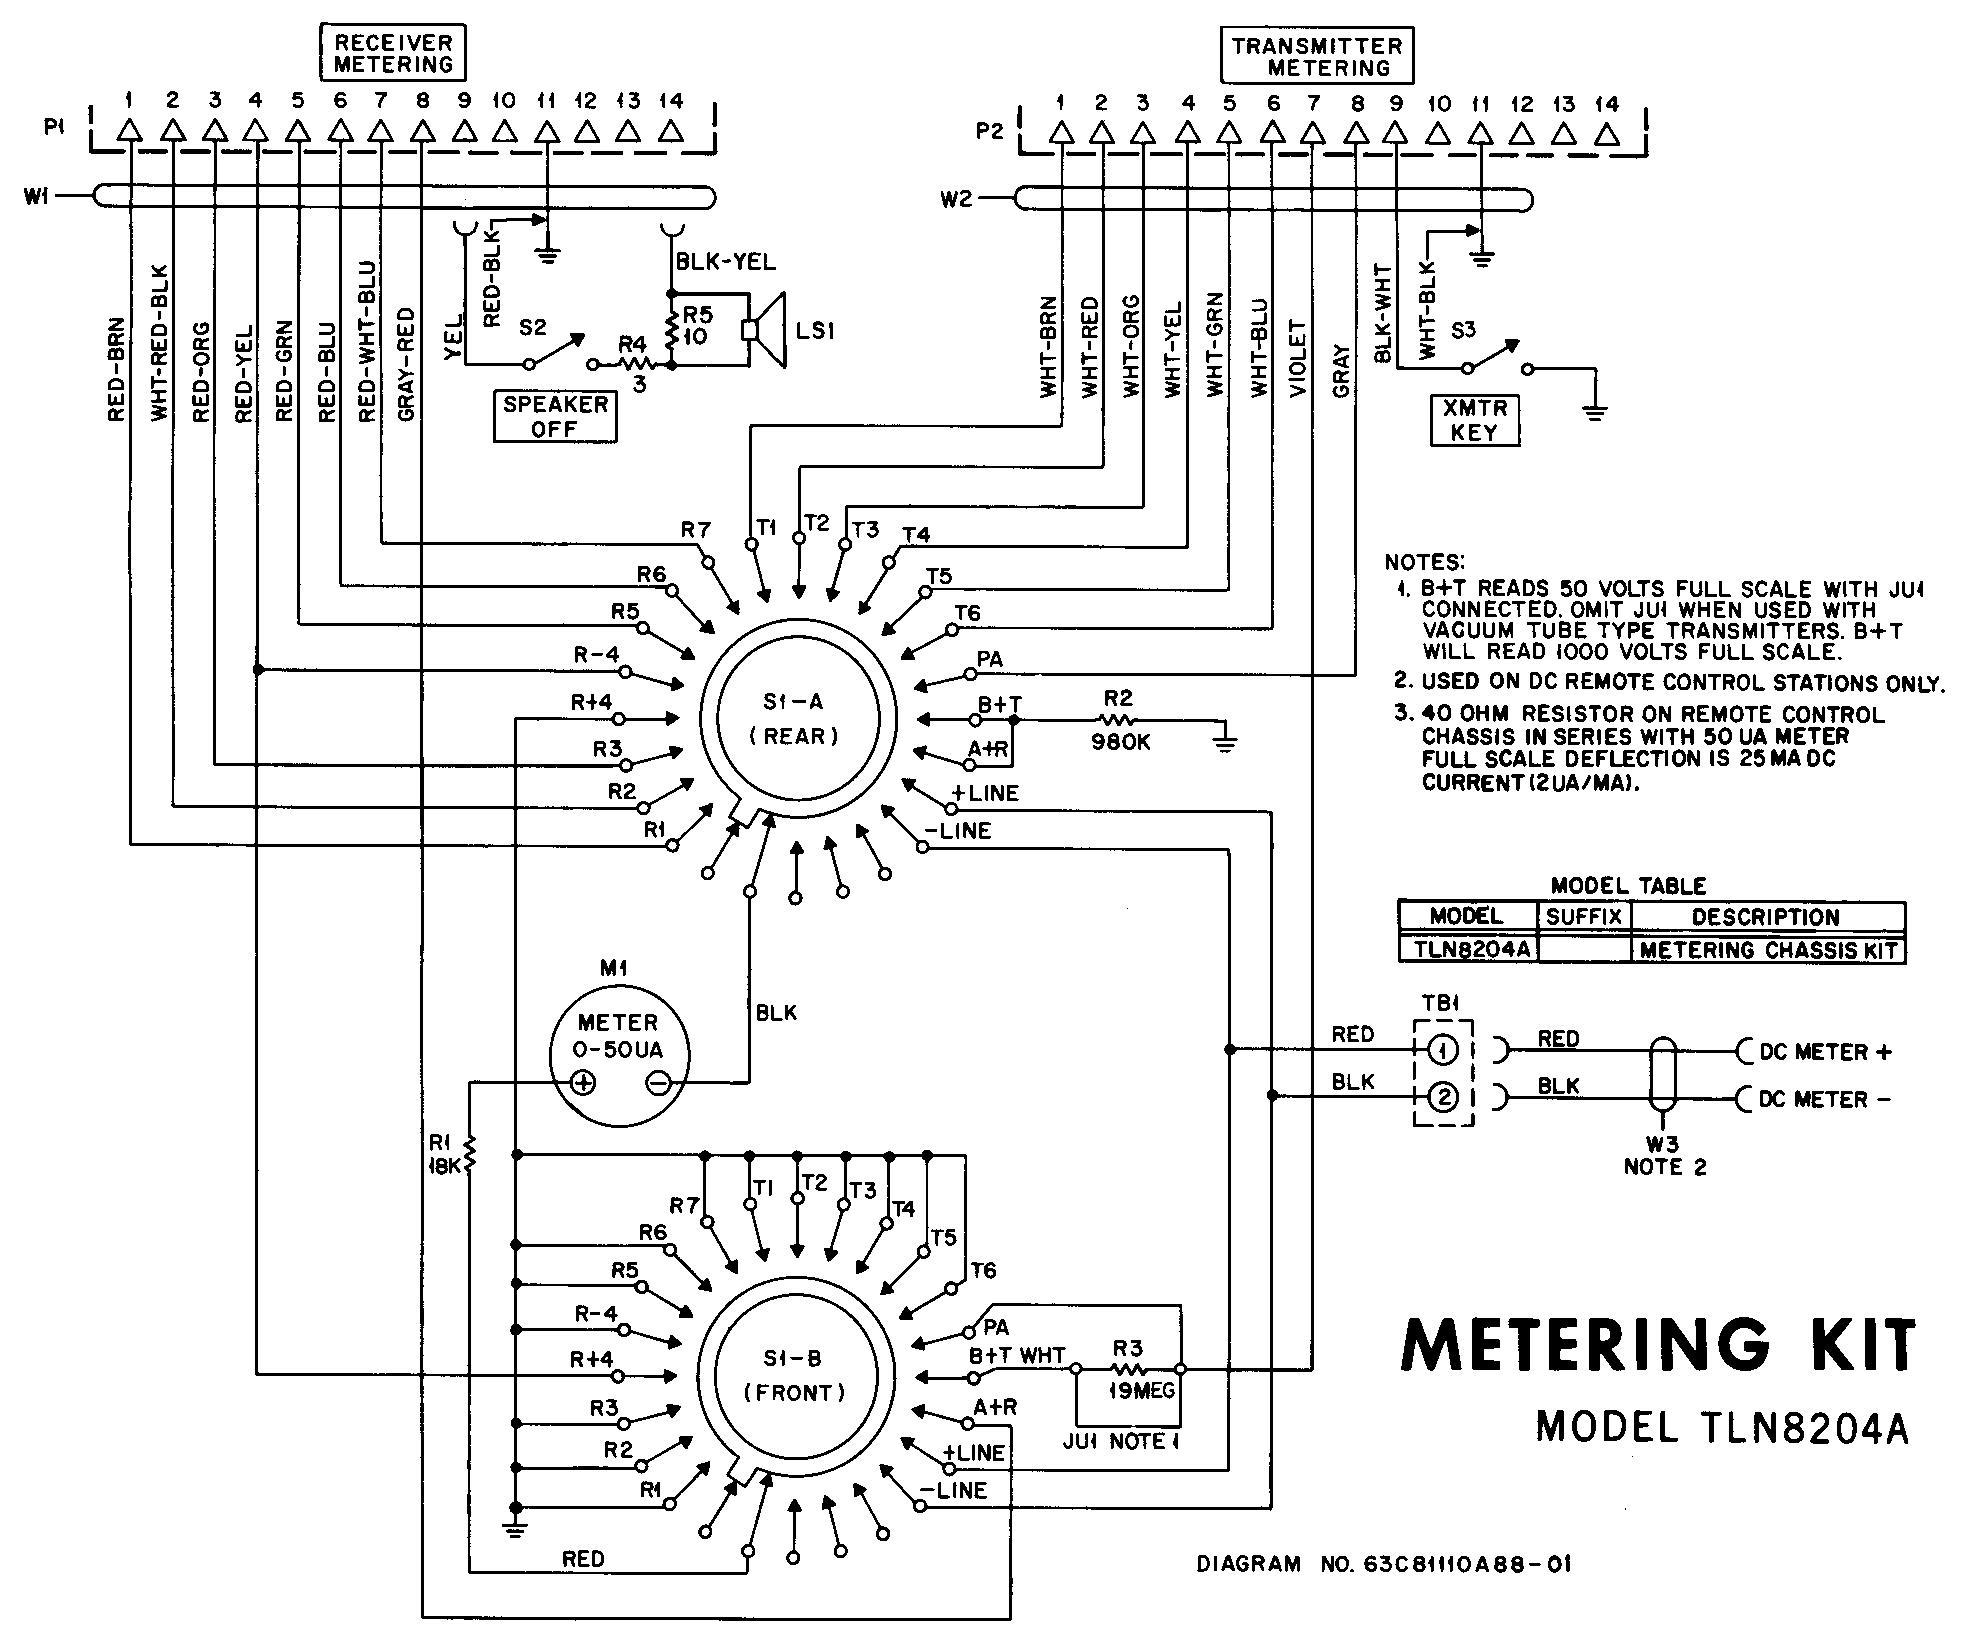 metering kit motorola motrac base station test meter 10 position rotary switch wiring diagram at metegol.co